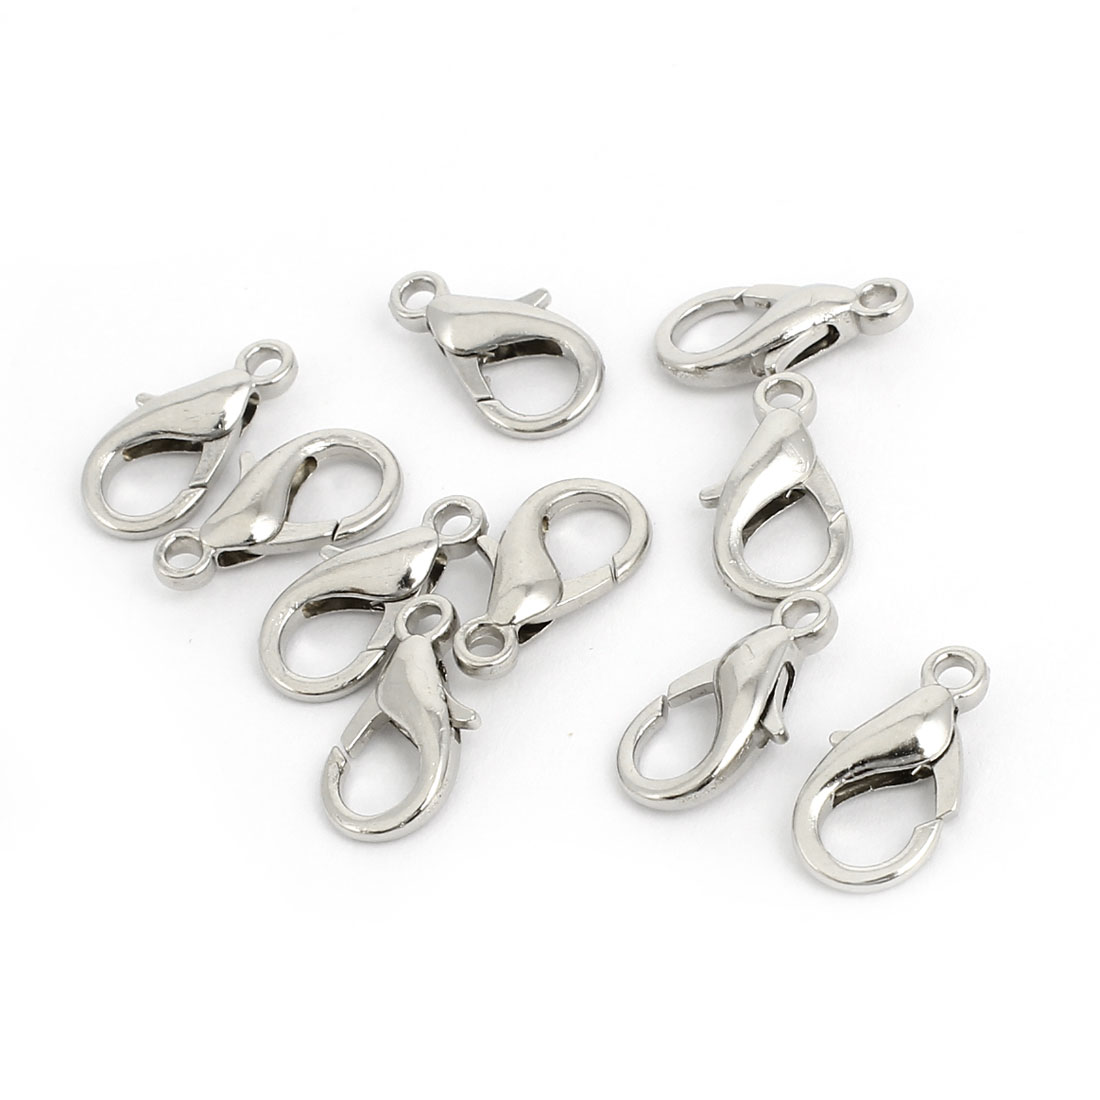 10 Pcs 16x8mm Silver Tone Lobster Claw Clasps Connectors Jewelry Findings